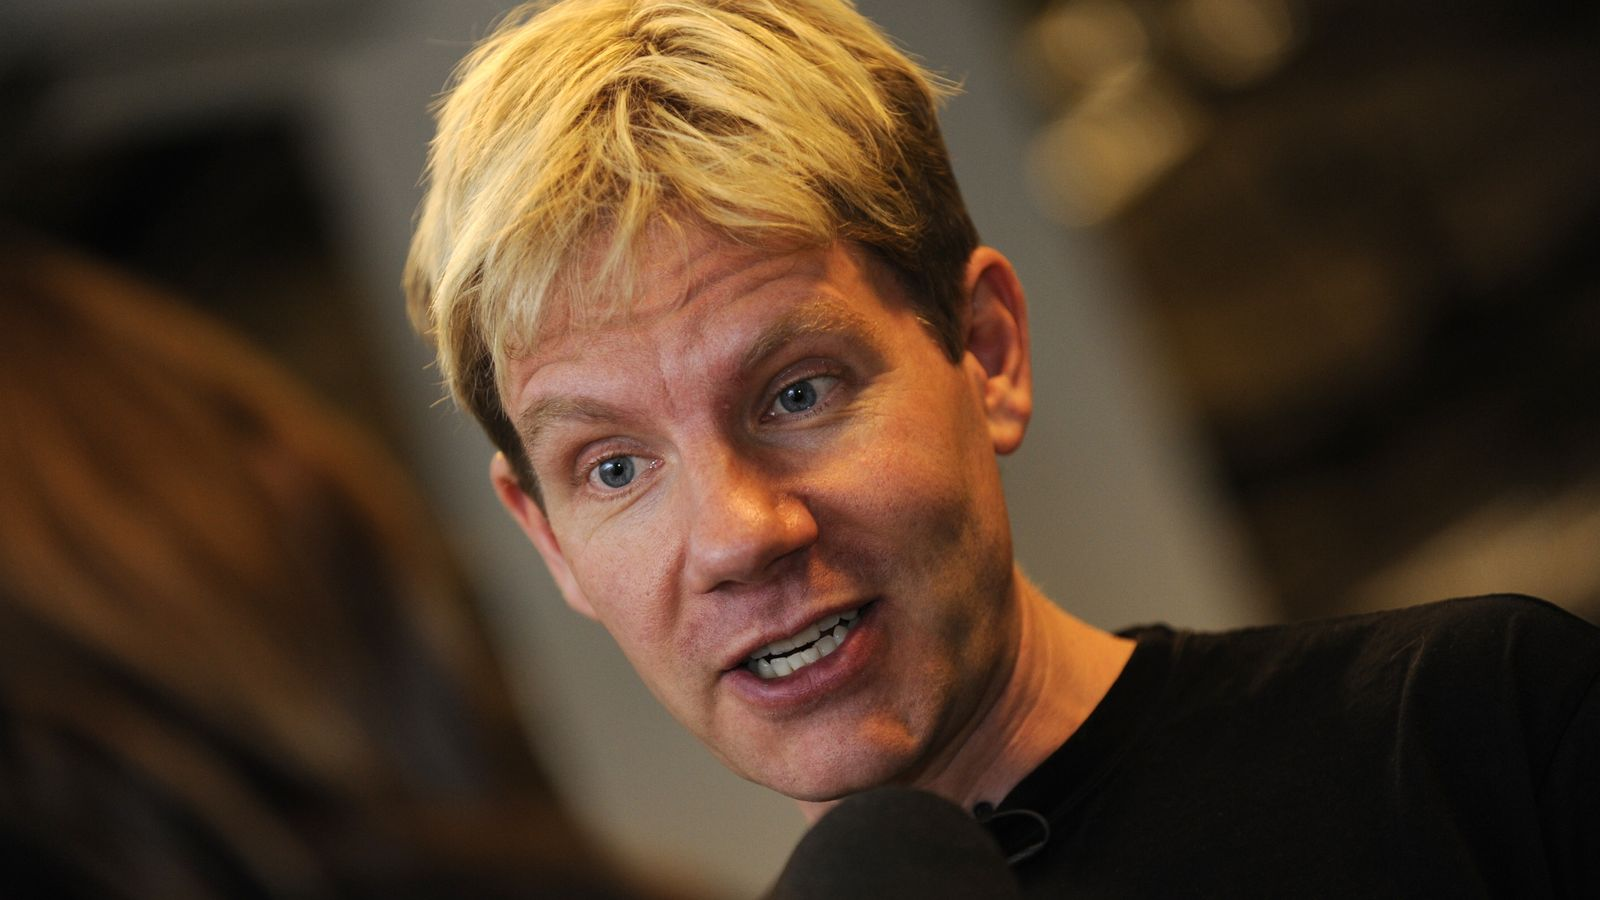 Bjorn Lomborg: 'Climate alarm' is as big a threat as climate change - it leads to anxious lives and bad policies - Sky News